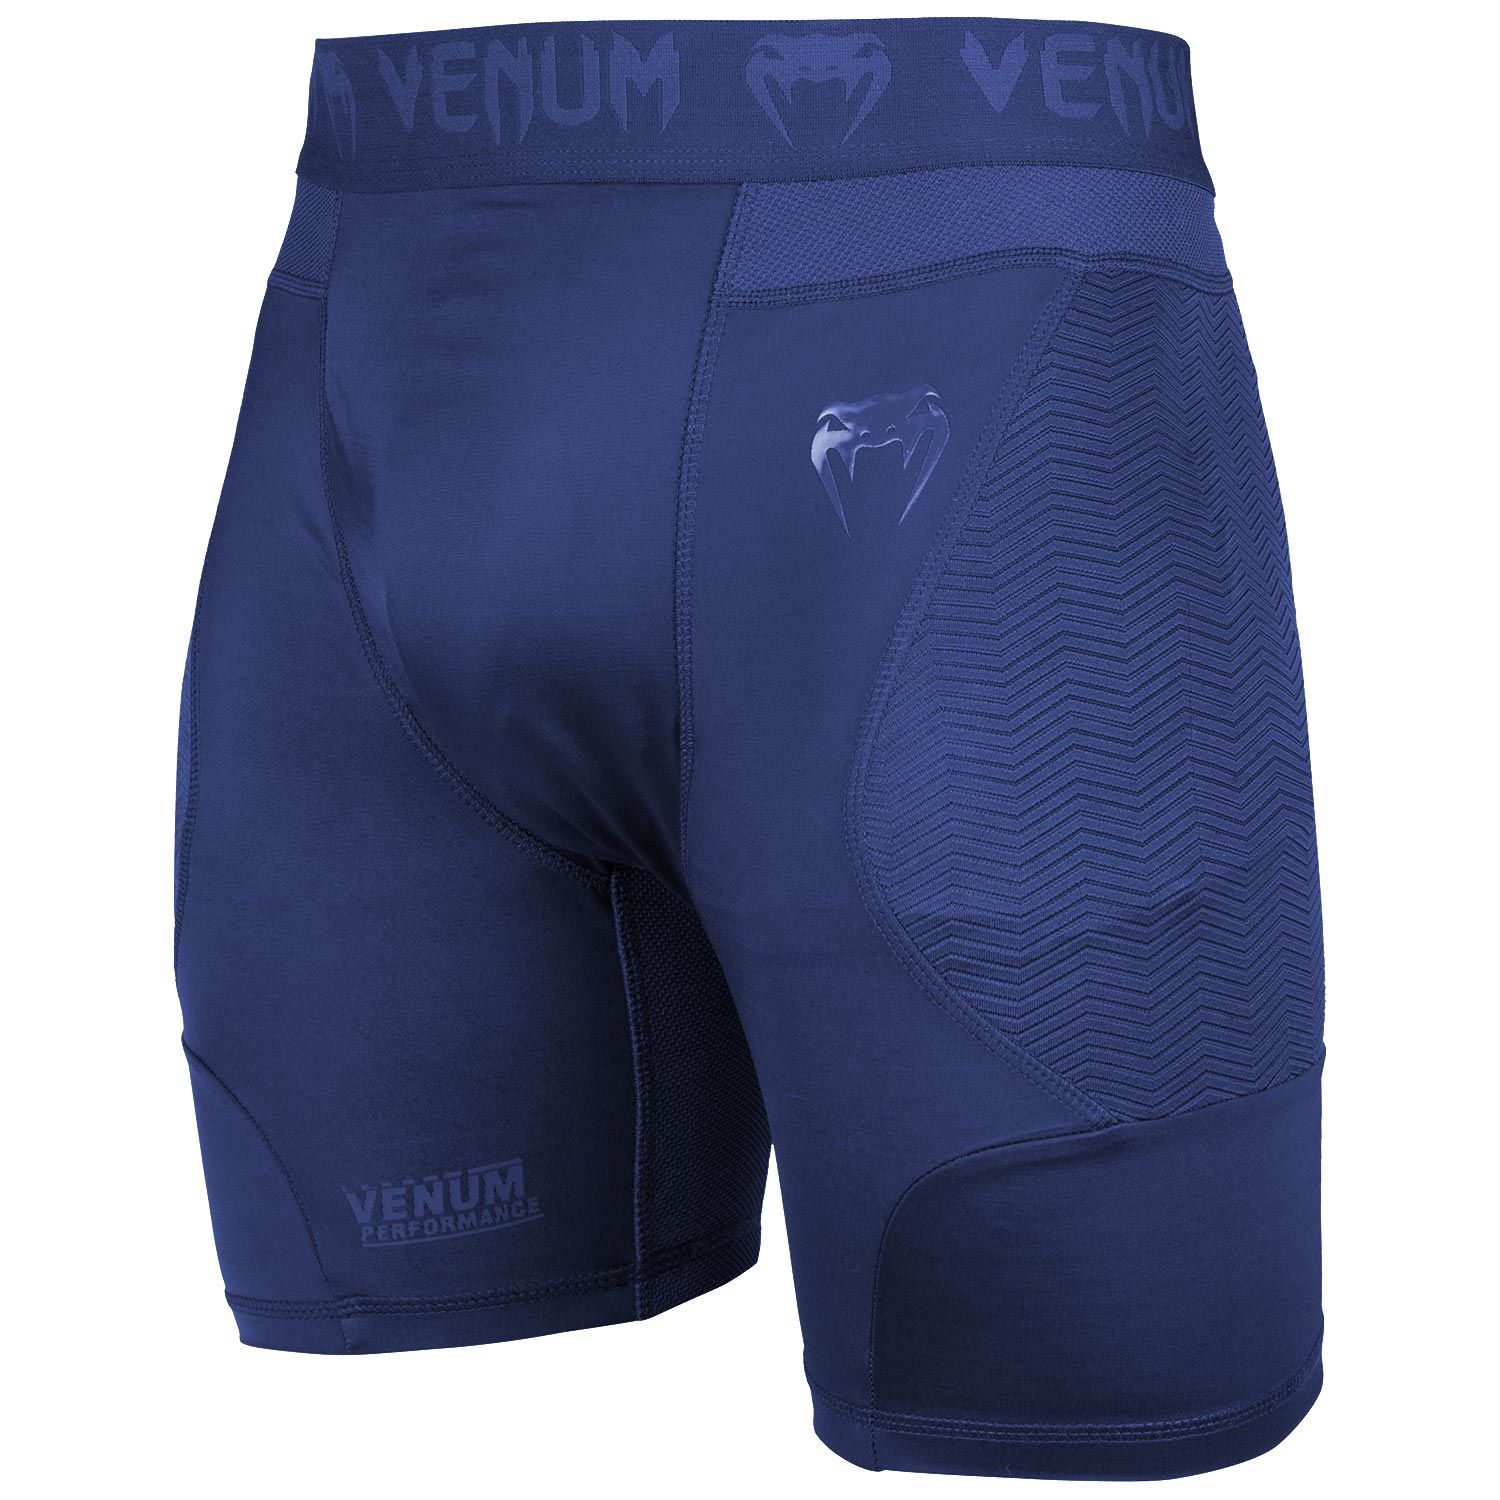 Short de compression Venum g-fit